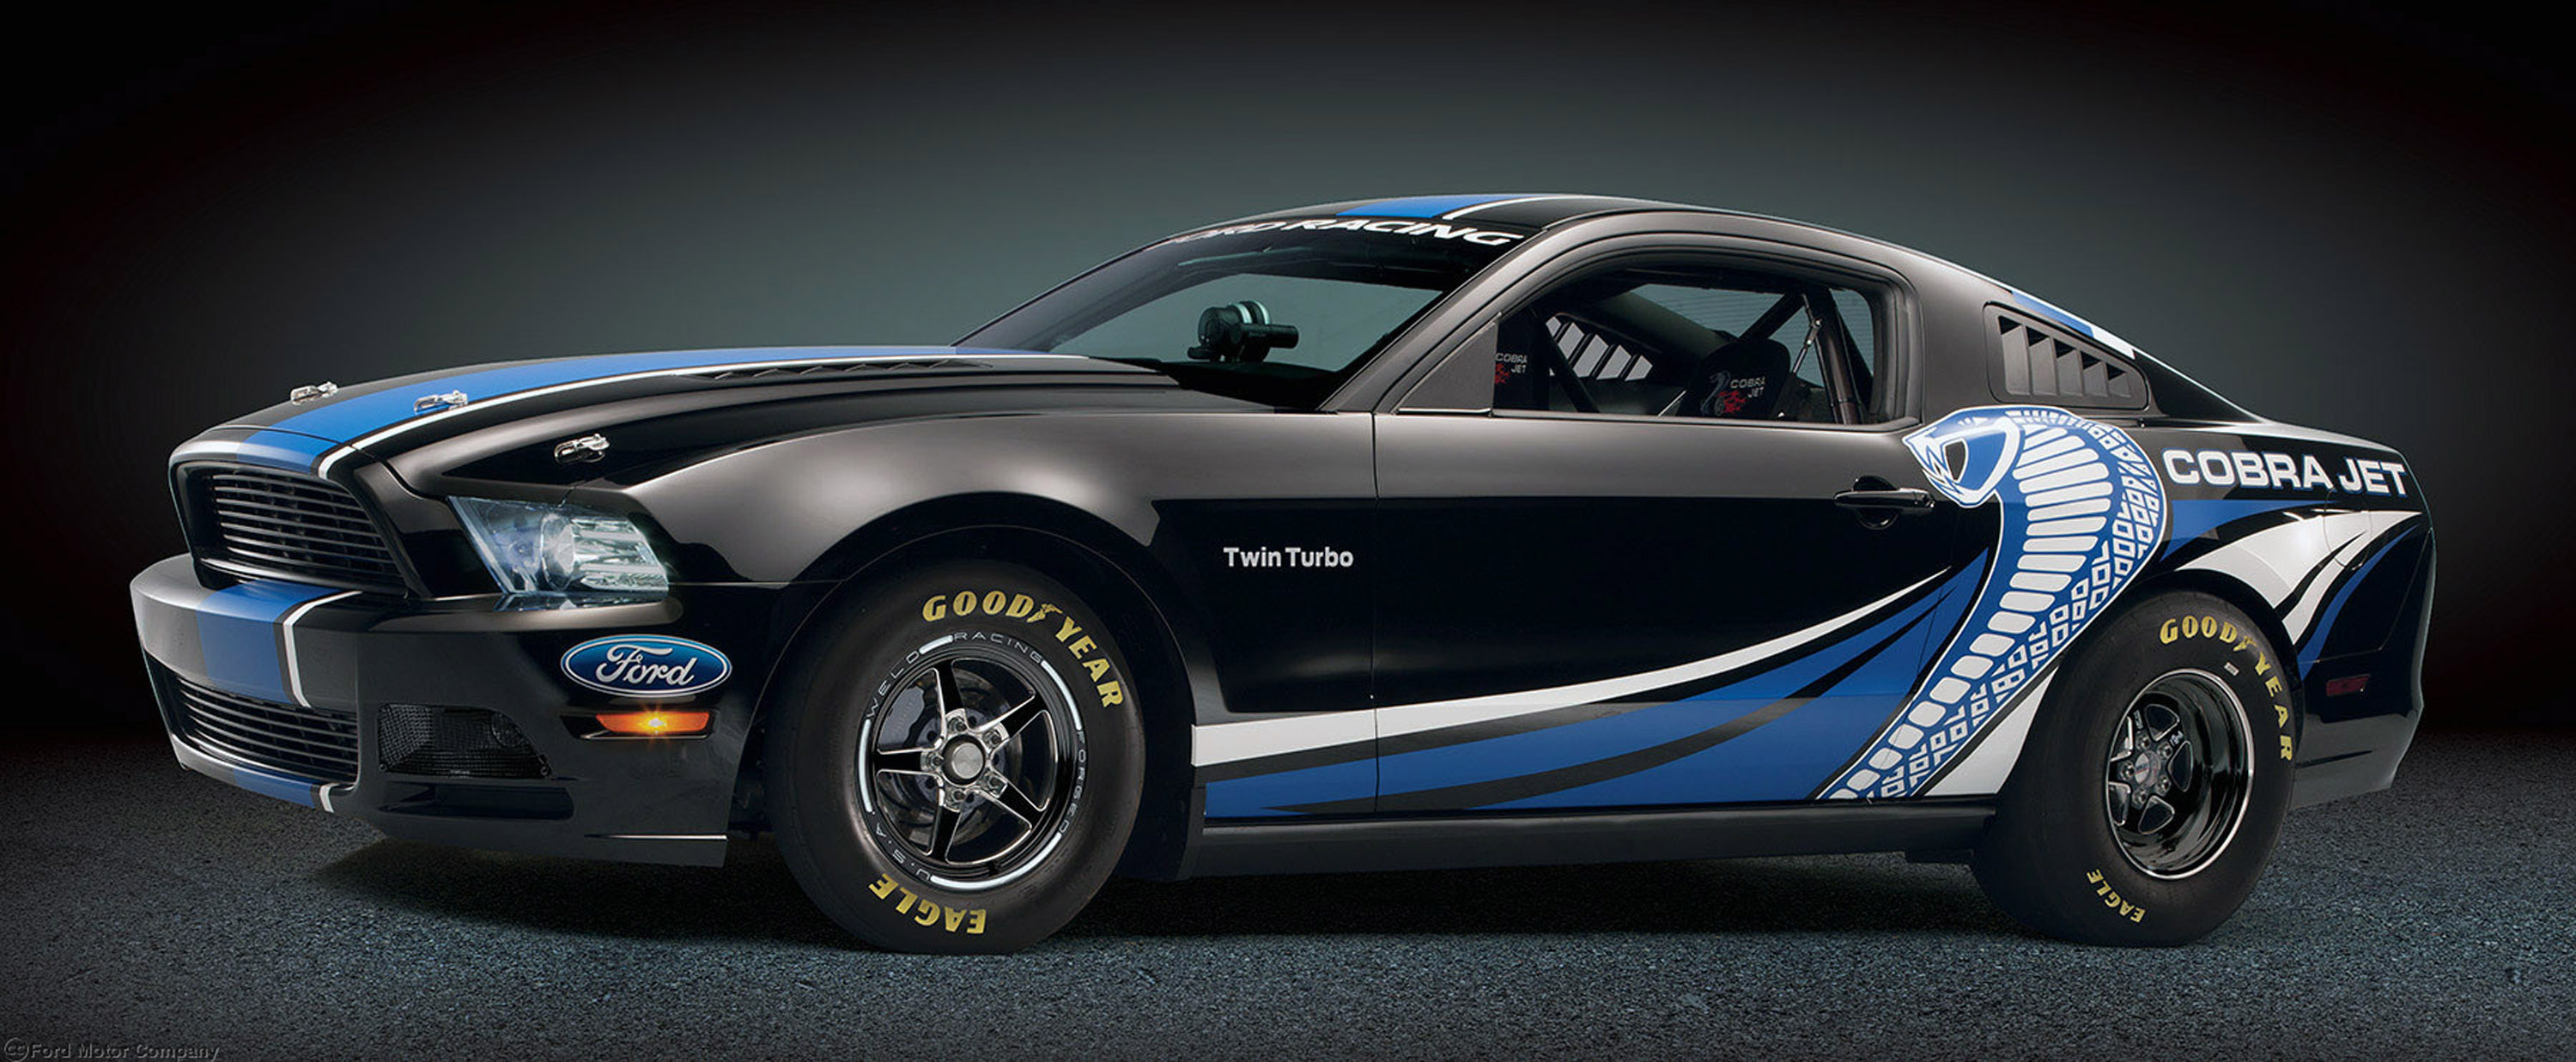 23 Ford Mustang Cobra Jet Twin Turbo HD Wallpapers Background 3000x1237